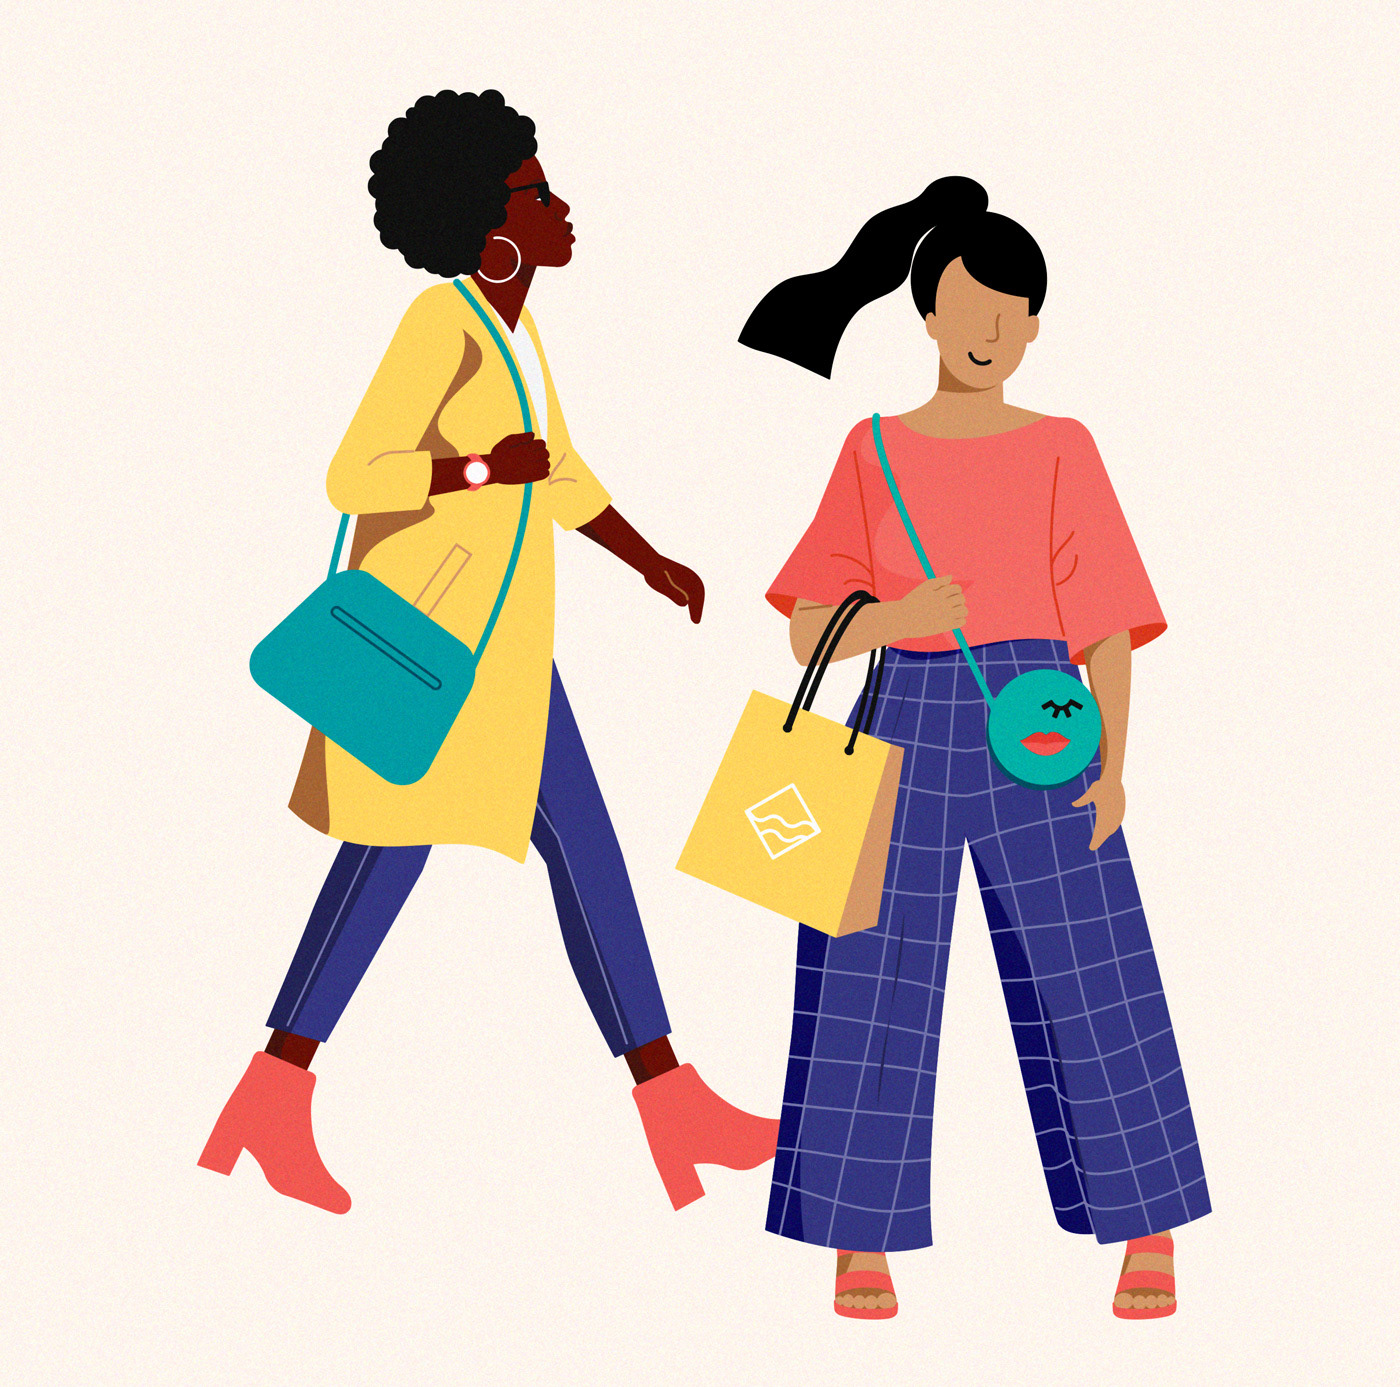 Fashionable girls shopping in the streets of the city of The Hague